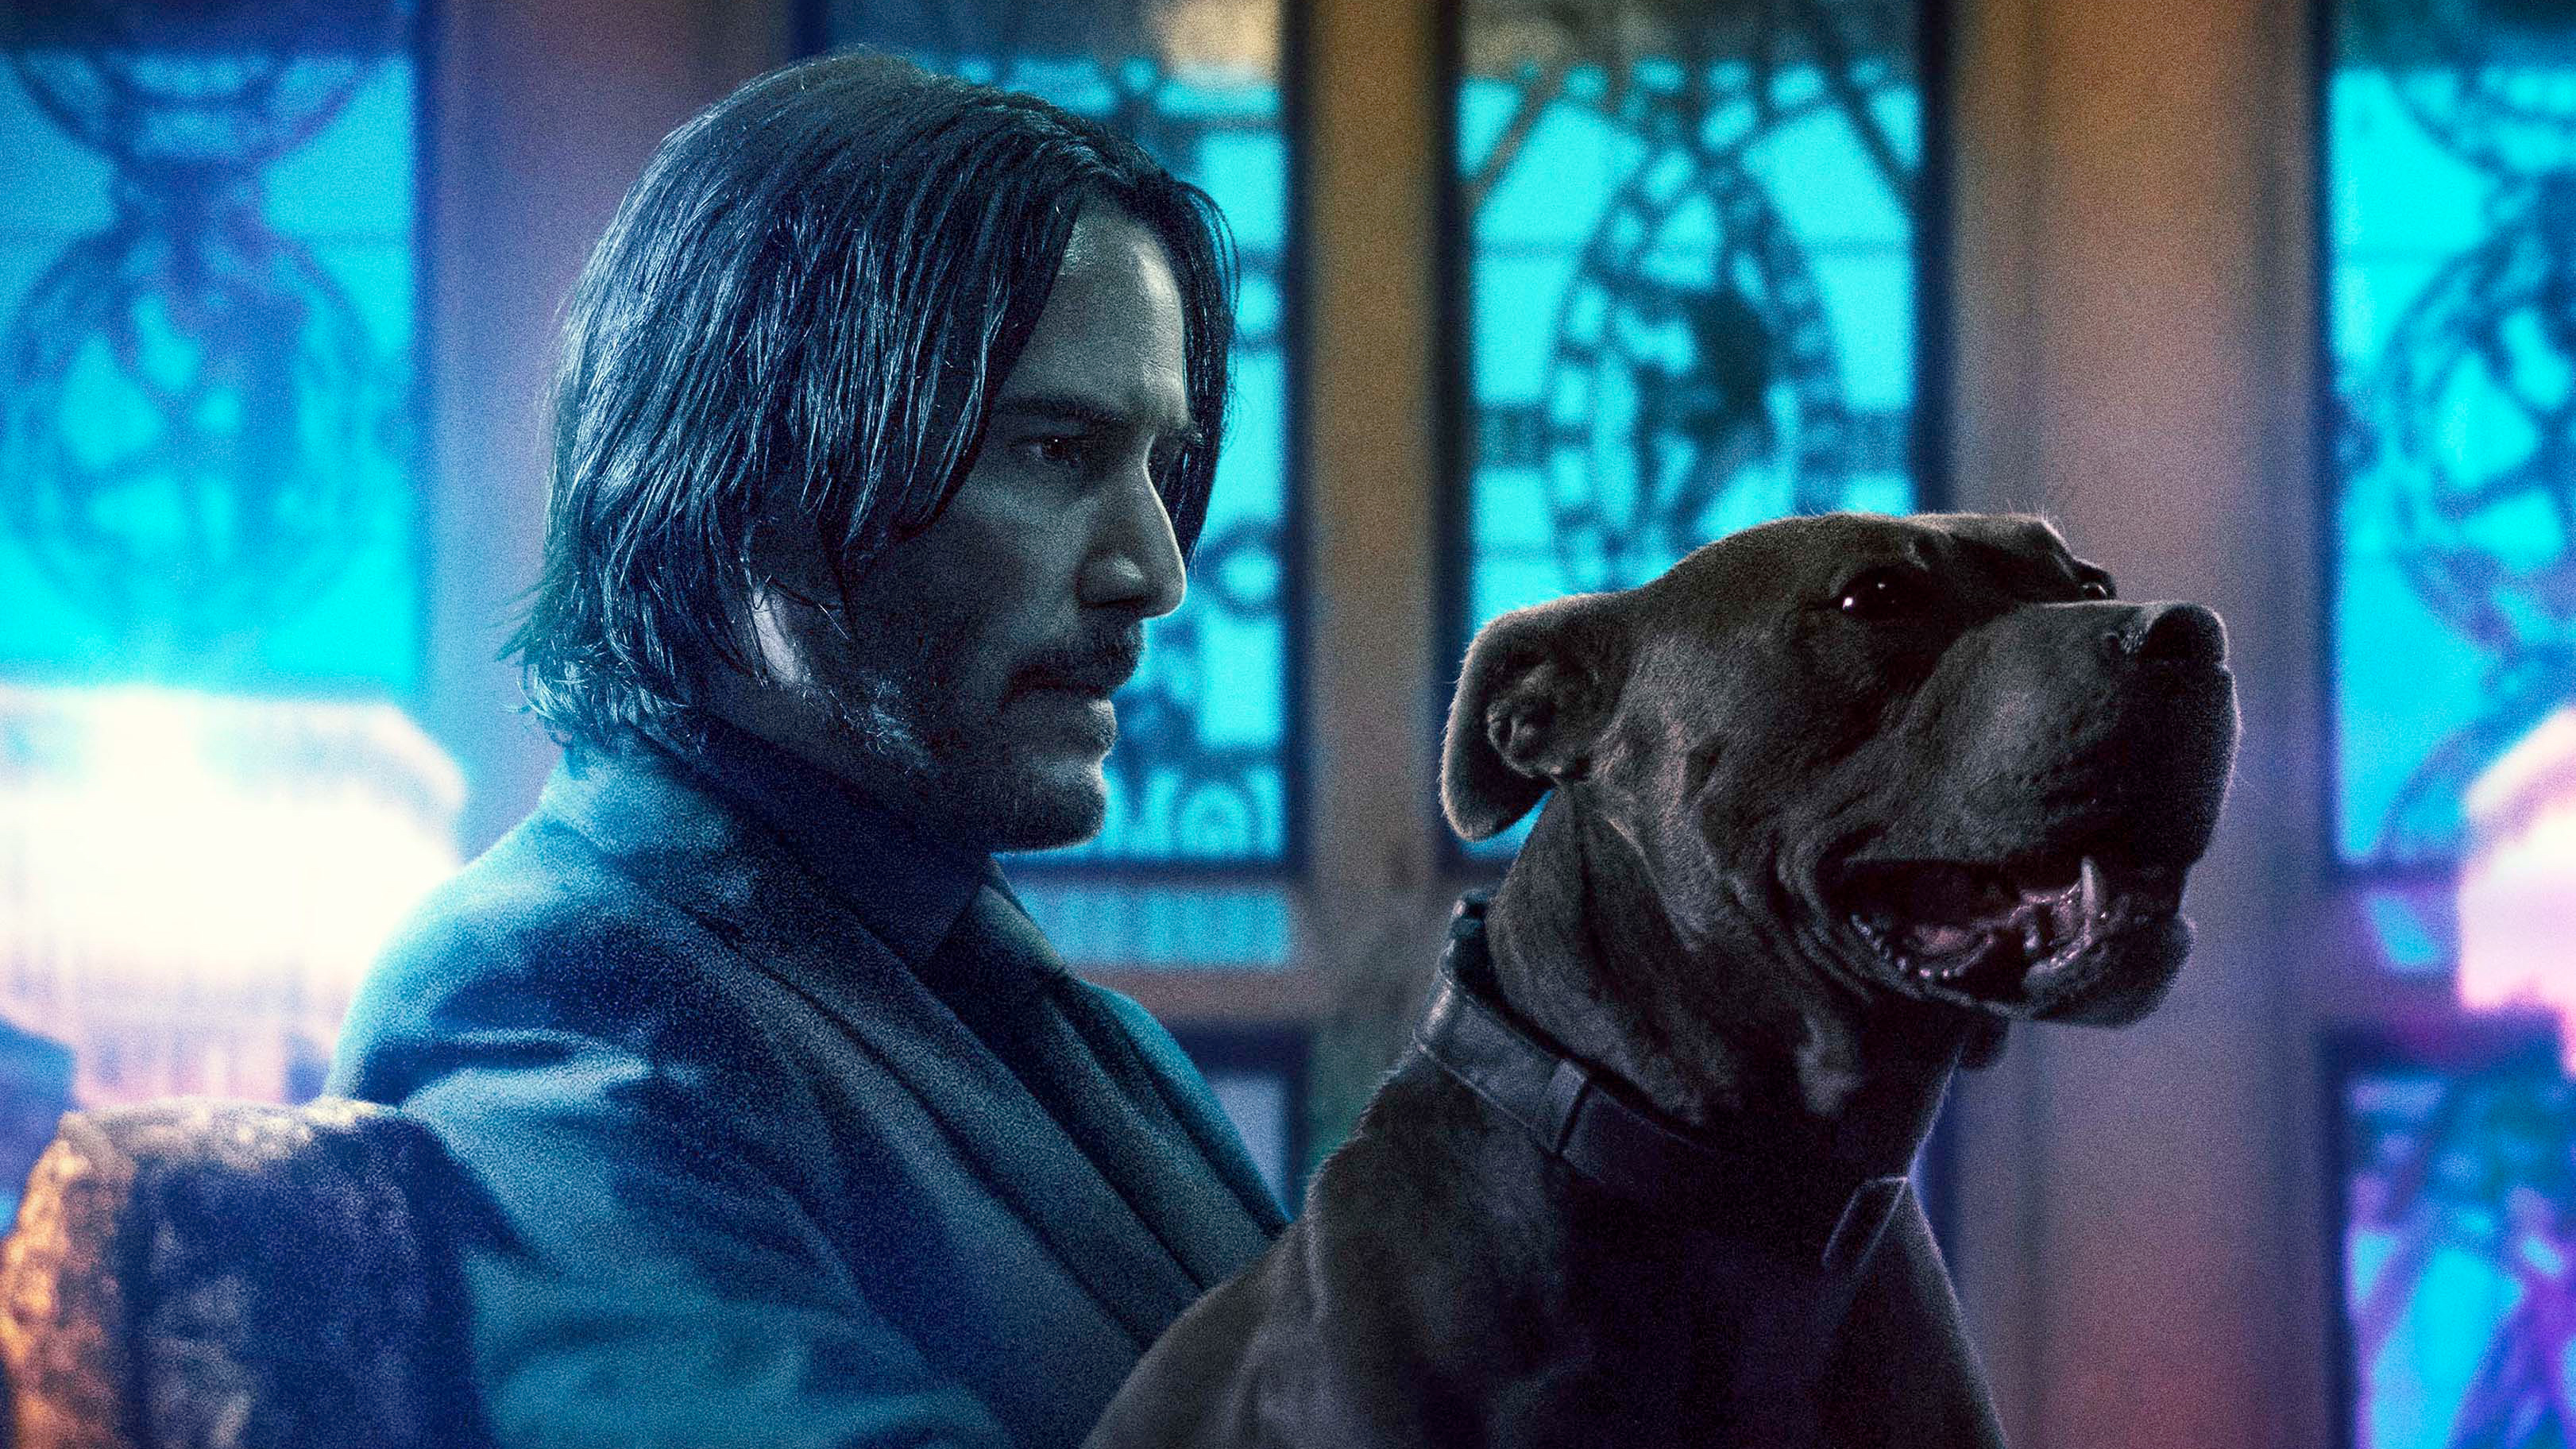 Movie Poster 2019: John Wick Chapter 3 Parabellum Movie 2019 Poster, HD